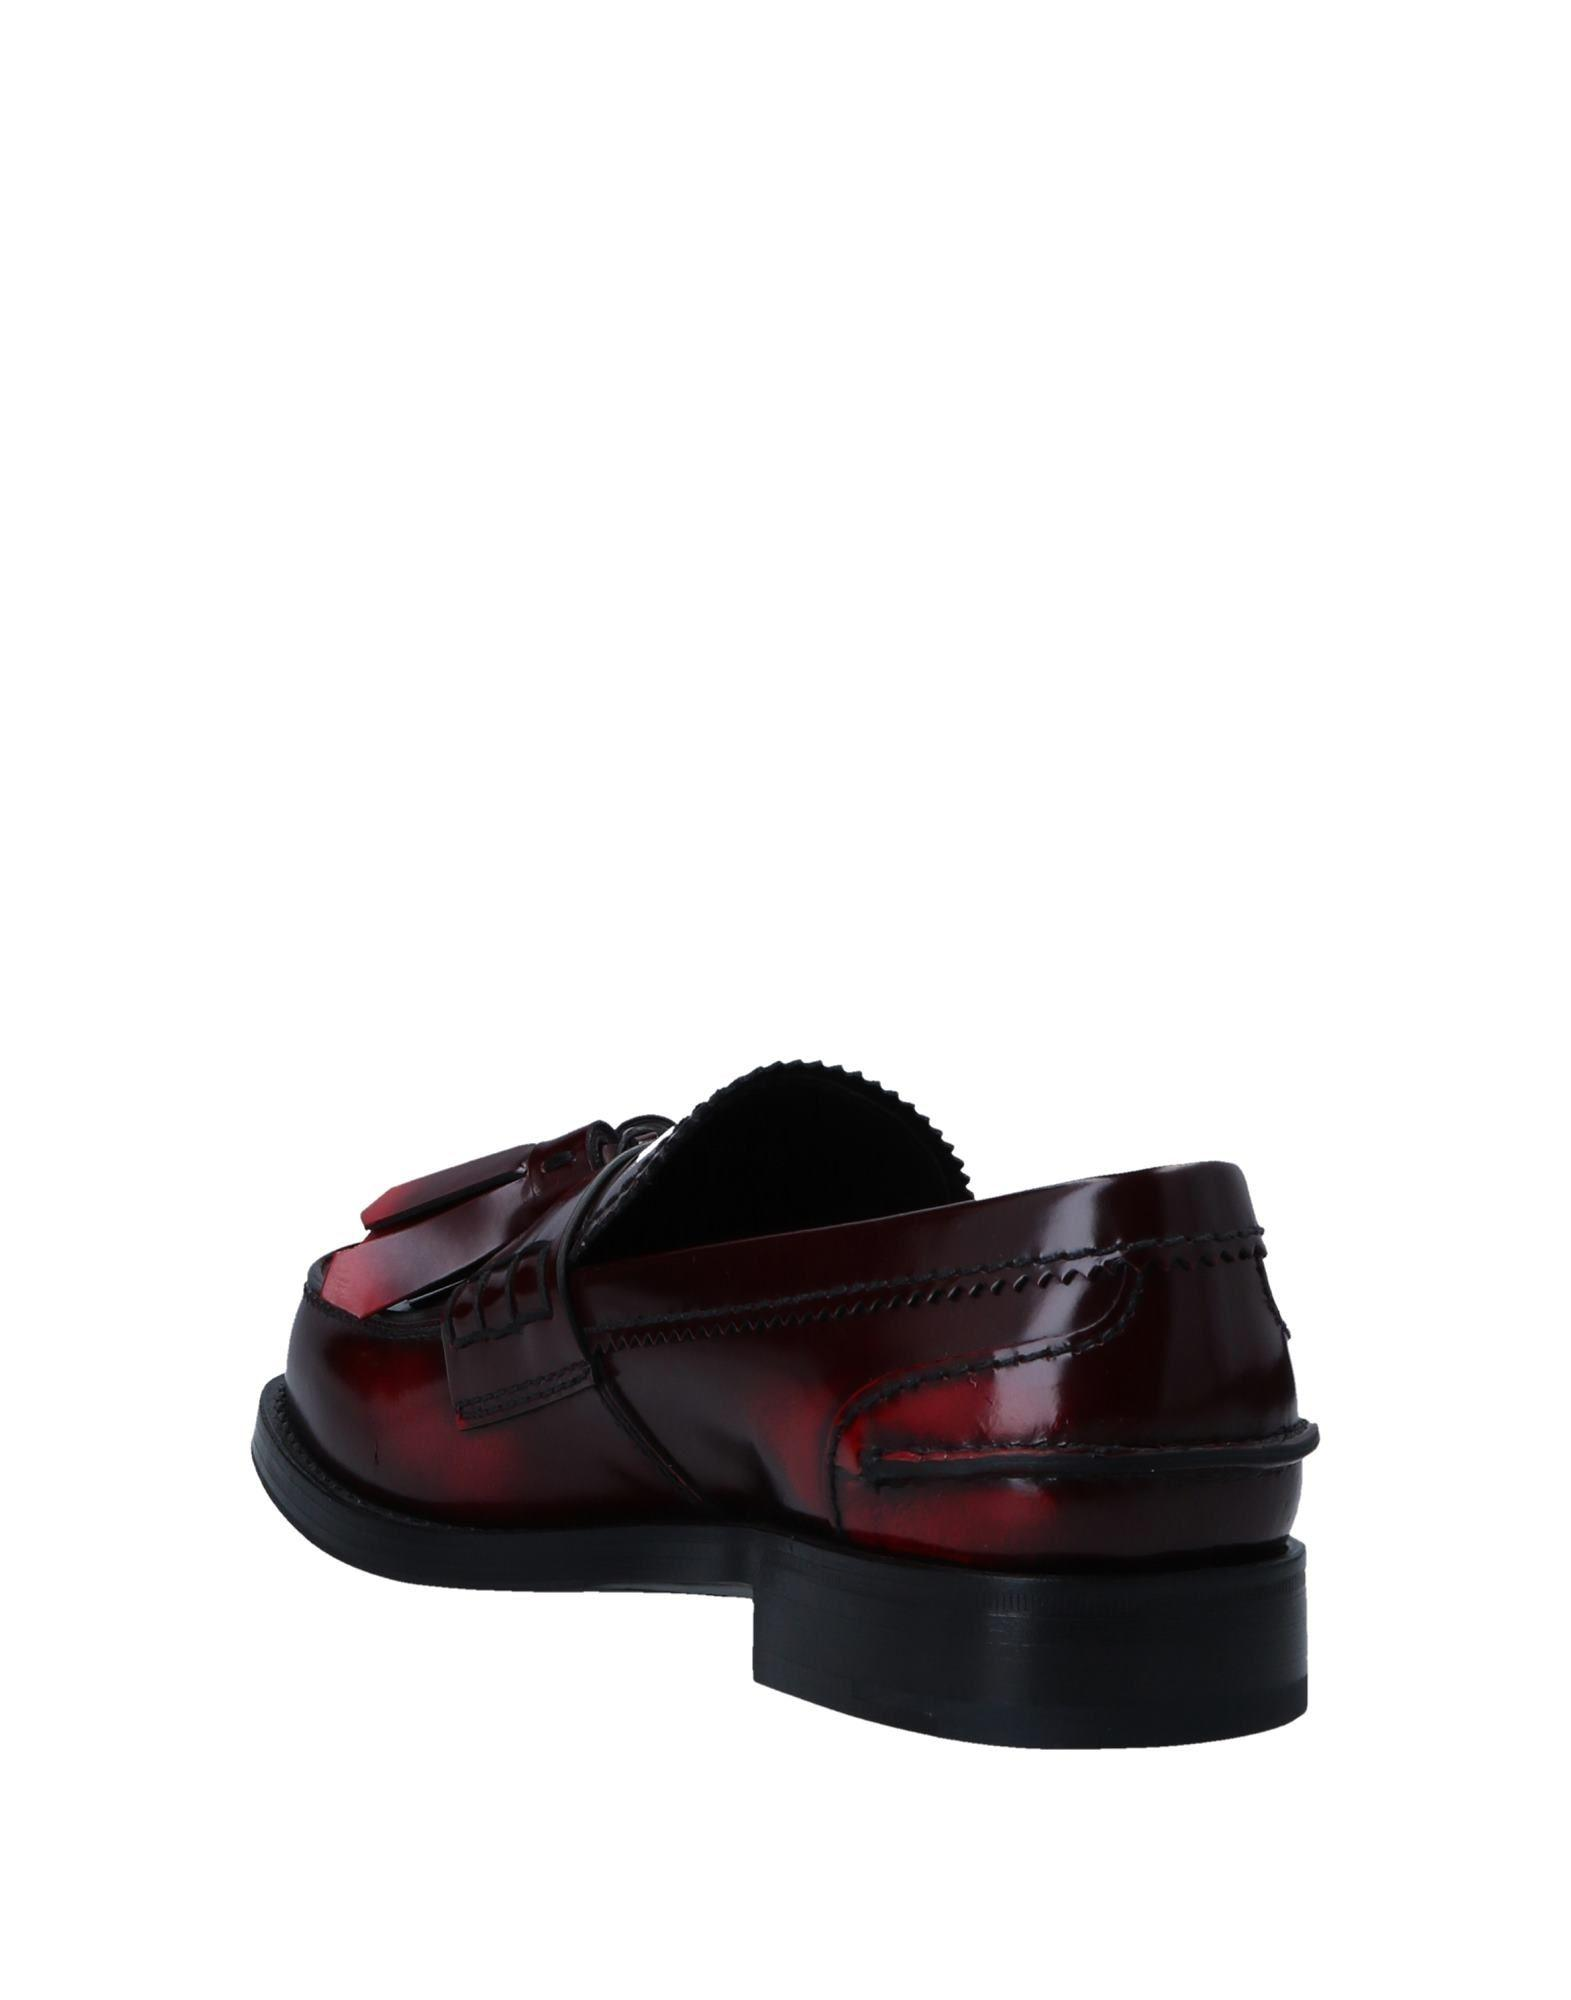 3dc846dbdc0 ... leather 209c1 e2a9b  cheap lyst prada loafer in red for men d4ffd b3a70